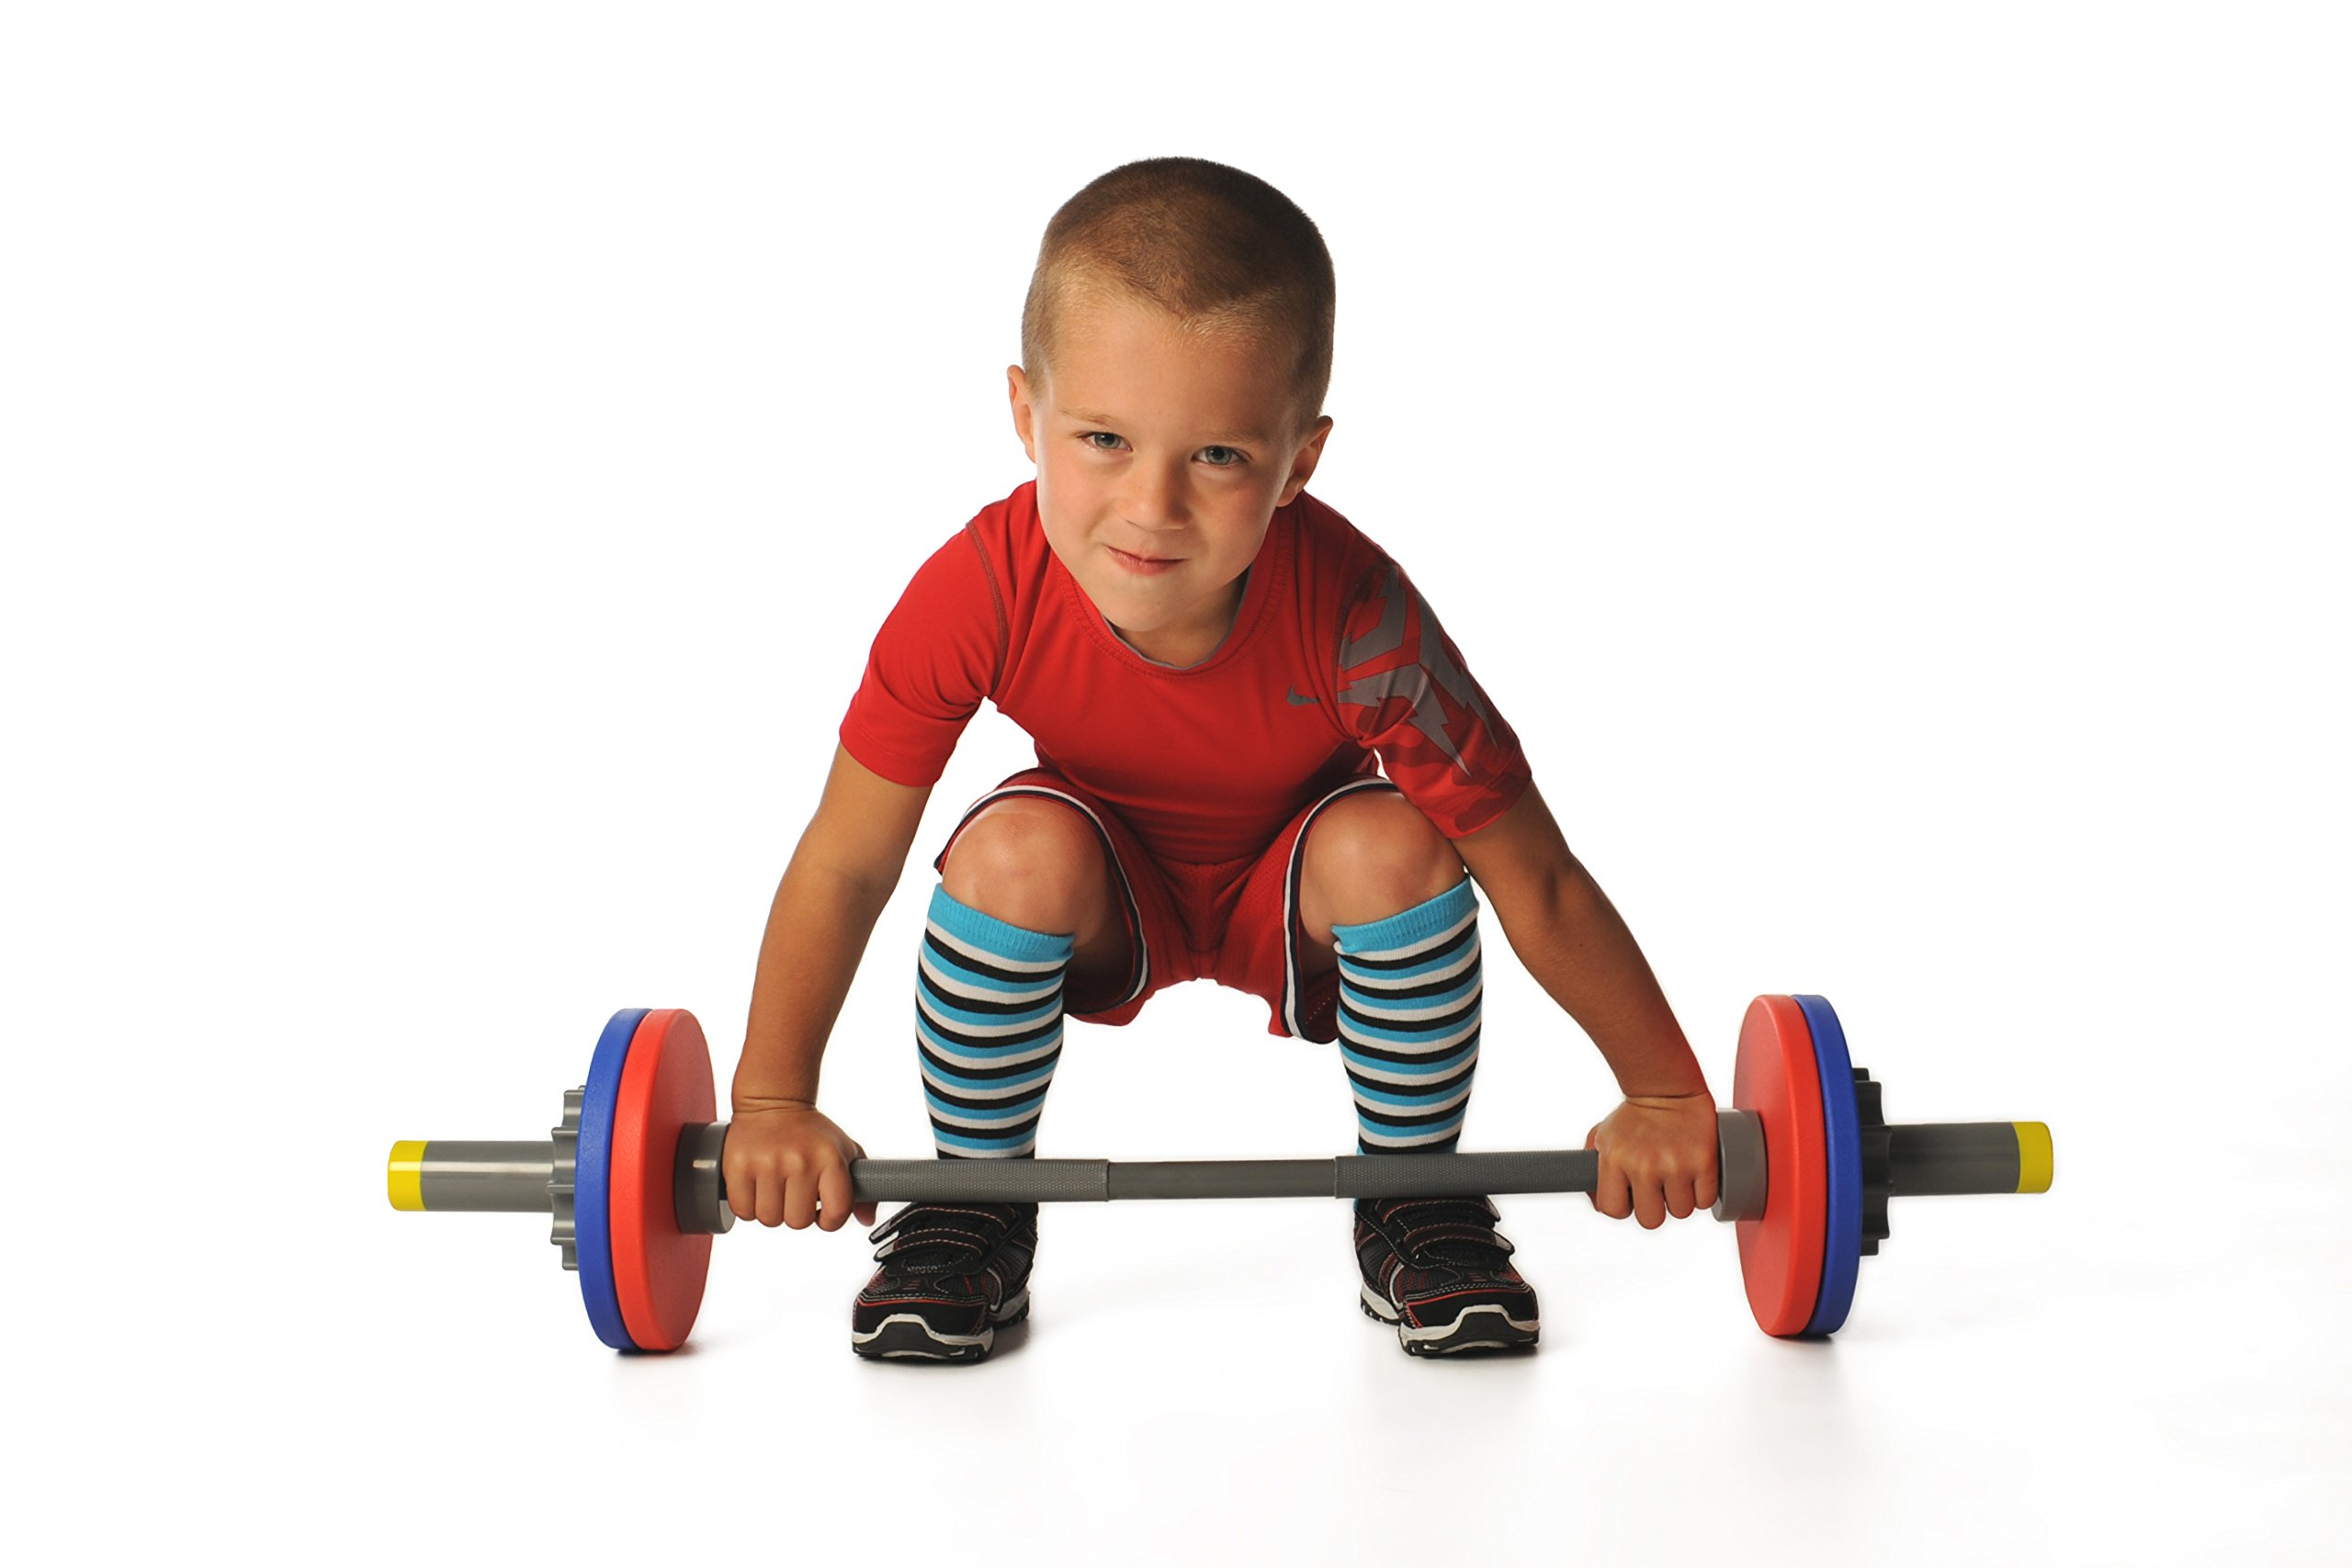 WOD Toys Barbell Mini - Adjustable Barbell Set for Kids Fitness - Safe, Durable and Kids Fitness Toys by WOD Toys